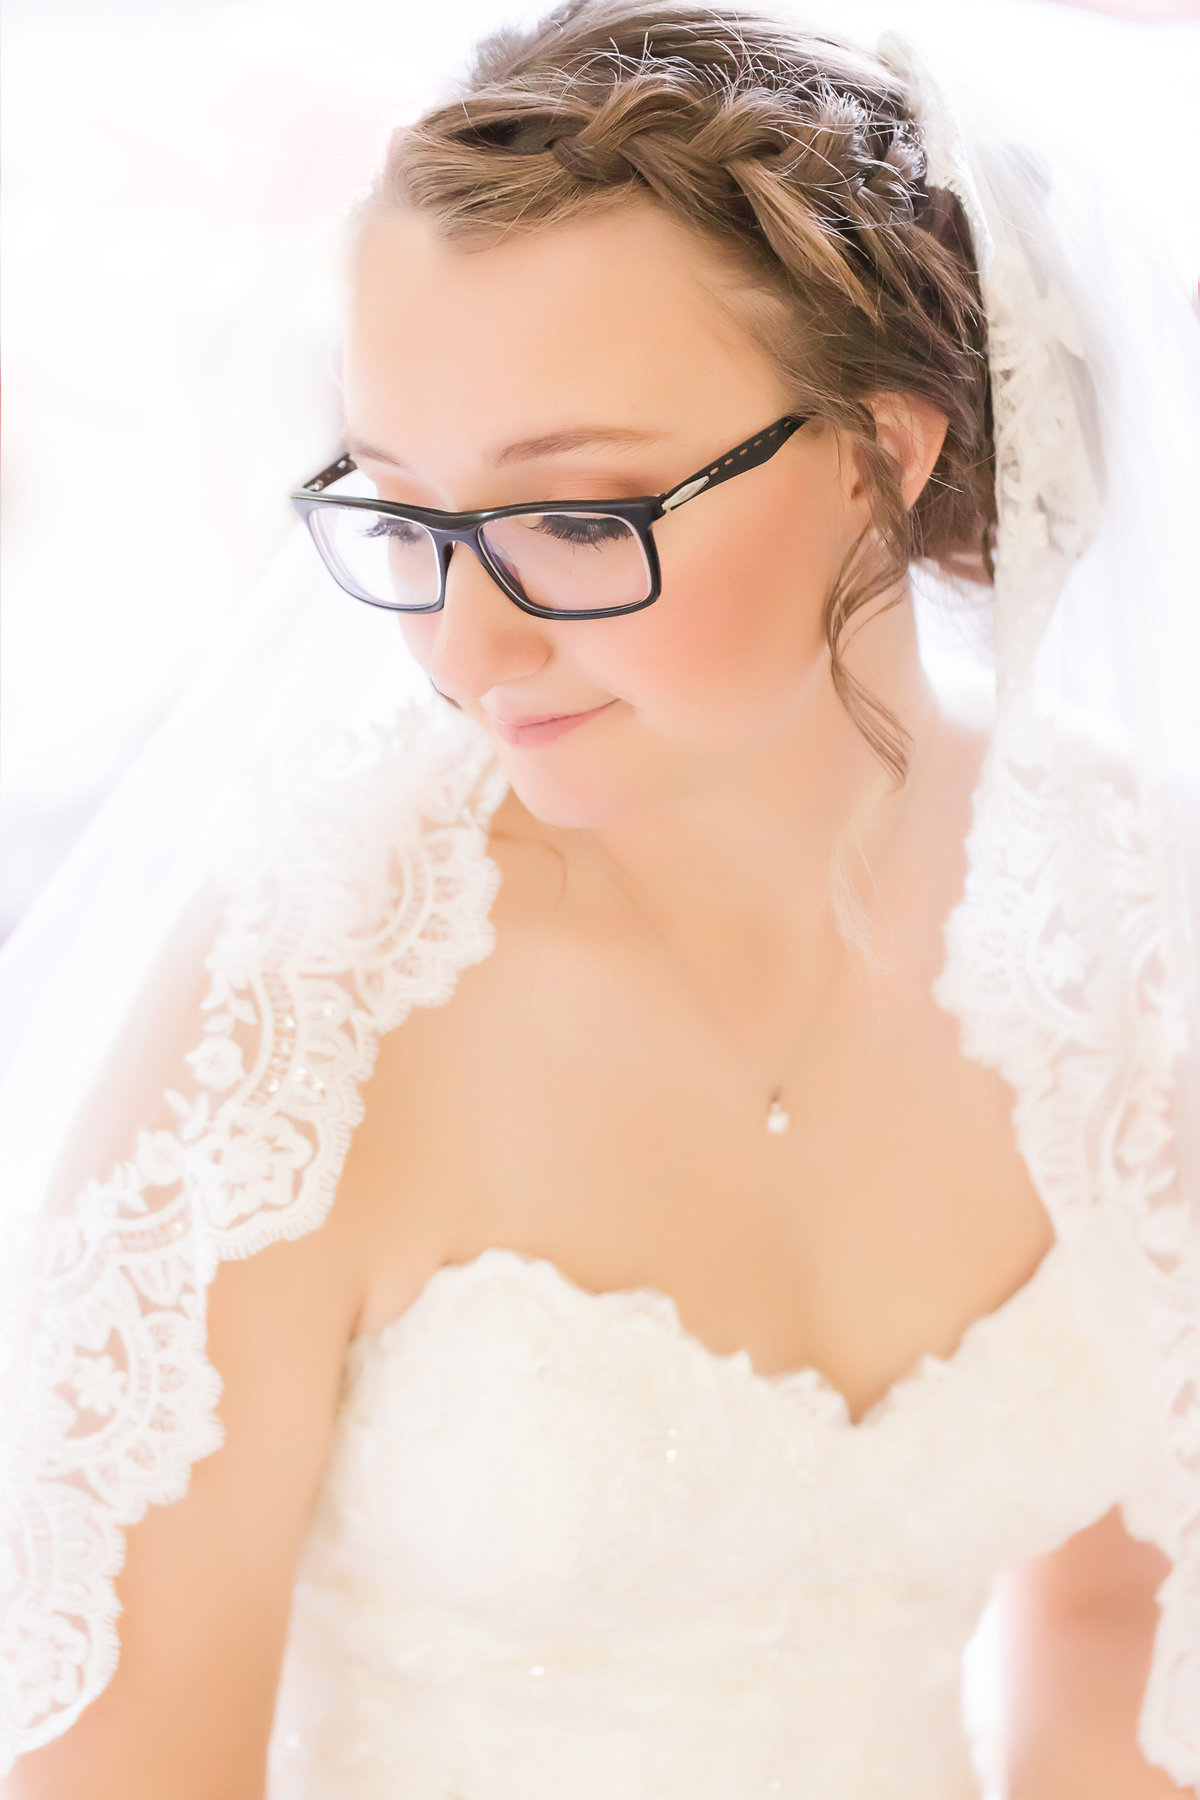 Details-Country Church Wedding-Decatur, Indiana-5061-p-co